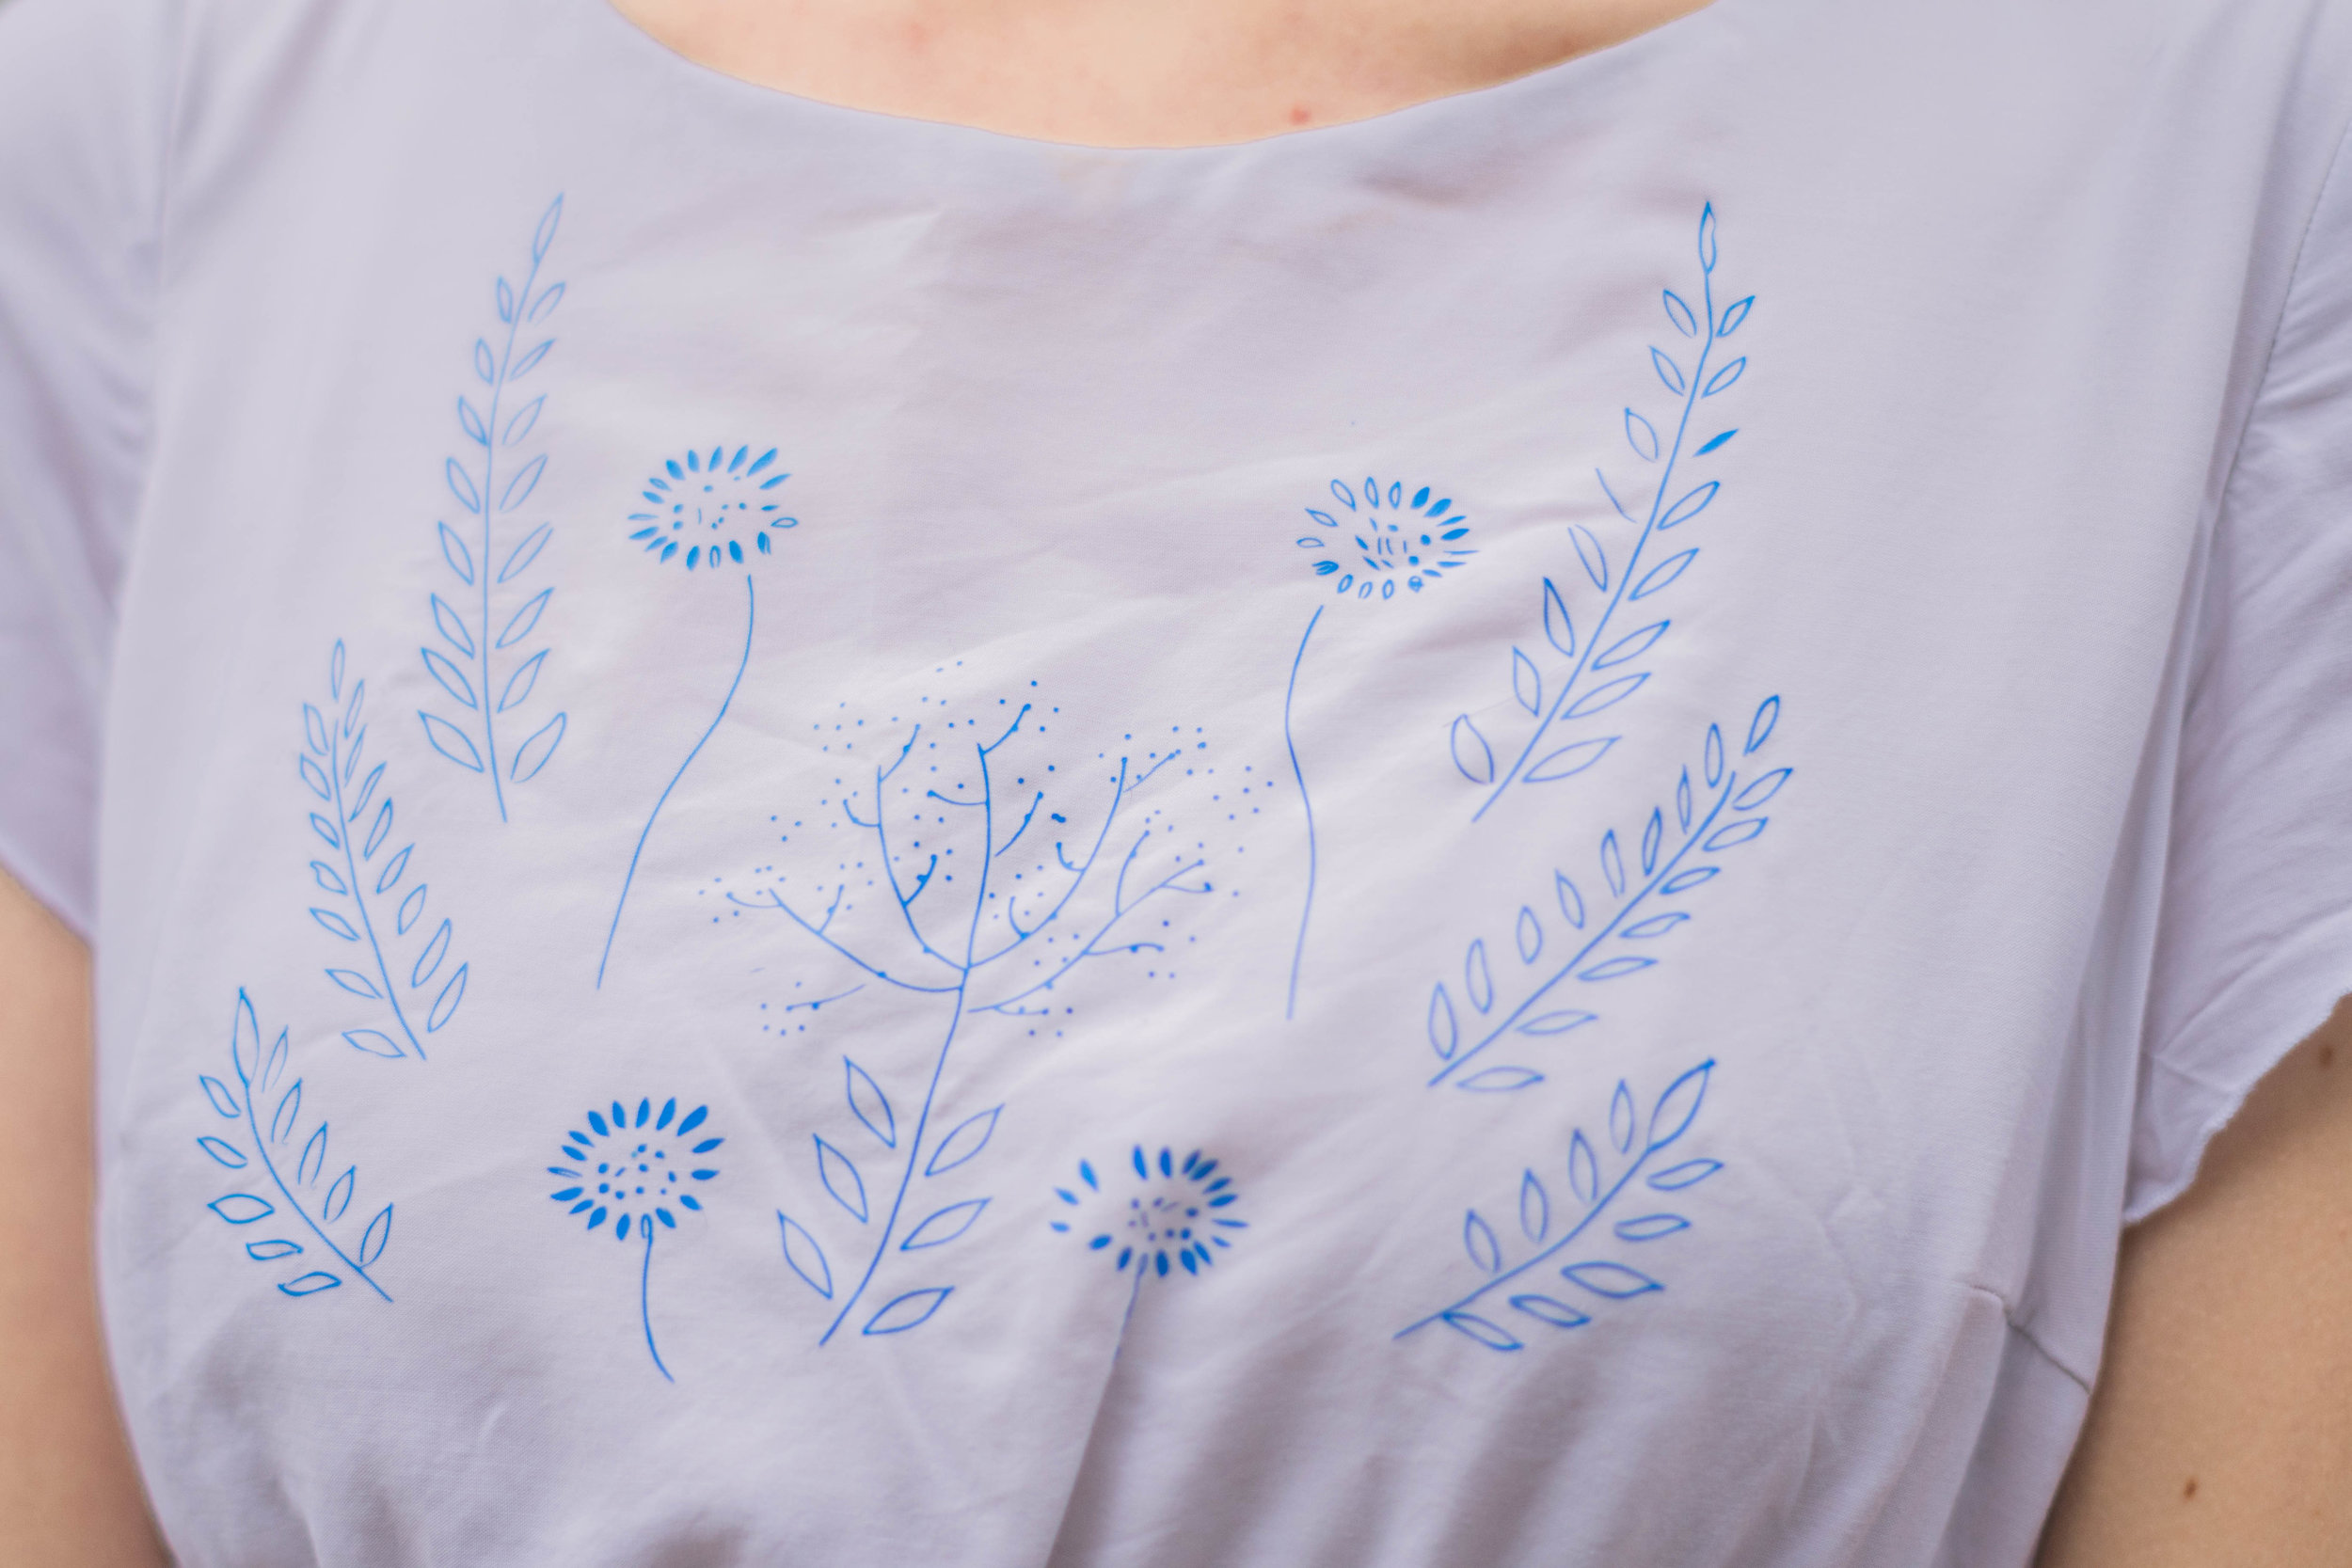 This sweet beach cover up was customized with faux-embroidery using the Cricut Explore Air 2! Find out how to easily add your own AND download some free patterns in the post.